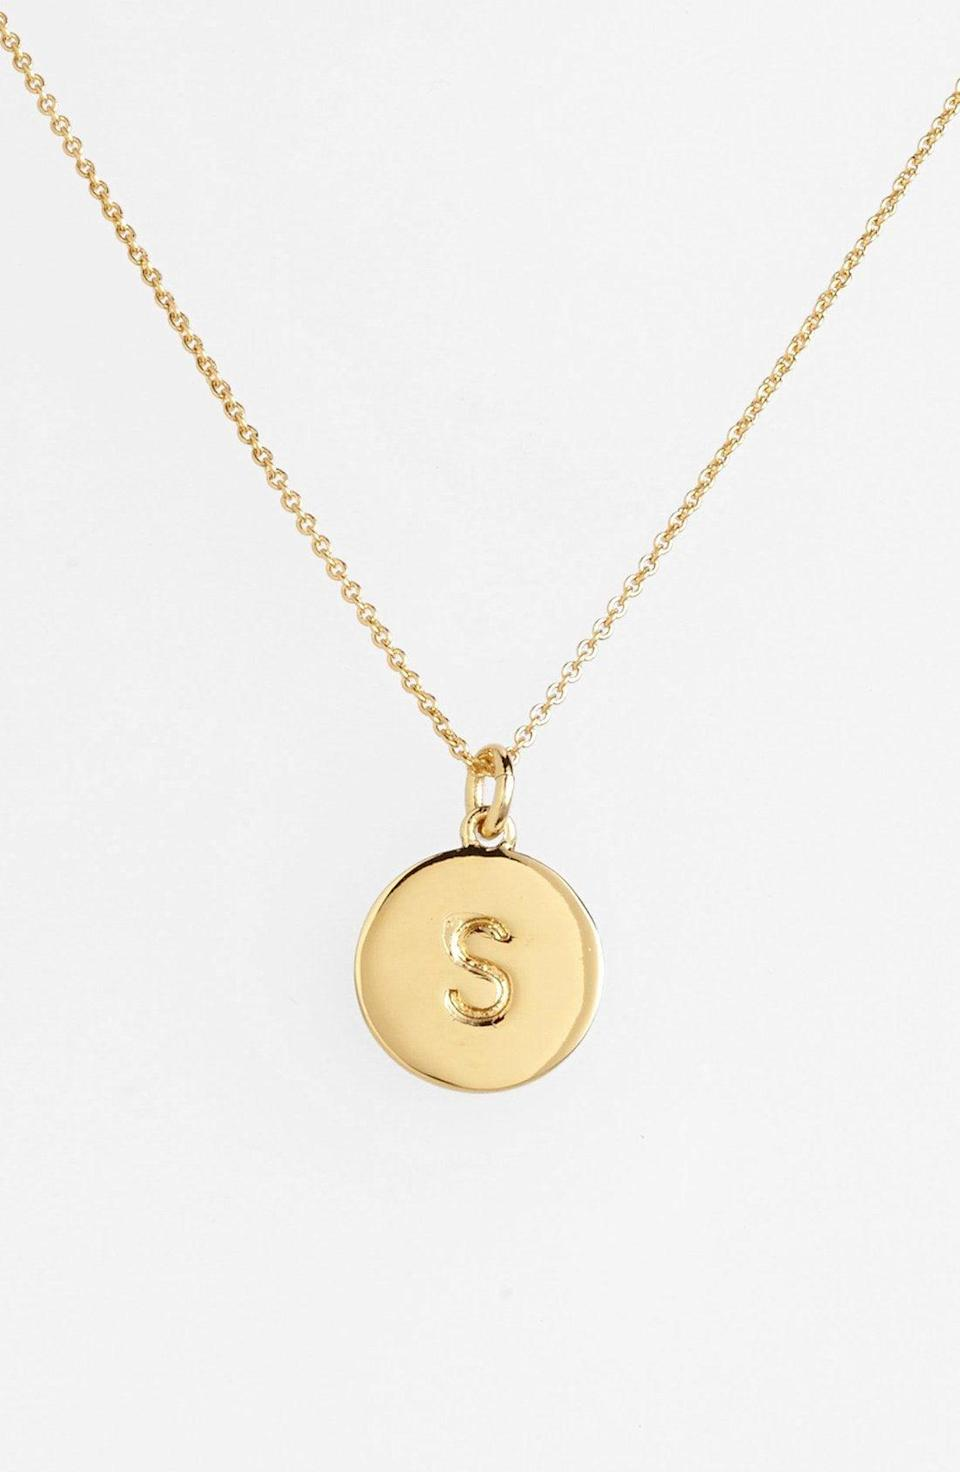 """<p><strong>Kate Spade </strong></p><p>nordstrom.com</p><p><strong>$40.60</strong></p><p><a href=""""https://go.redirectingat.com?id=74968X1596630&url=https%3A%2F%2Fwww.nordstrom.com%2Fs%2Fkate-spade-new-york-one-in-a-million-initial-pendant-necklace%2F3628637&sref=https%3A%2F%2Fwww.goodhousekeeping.com%2Fholidays%2Fgift-ideas%2Fg4349%2Fgifts-for-college-graduates%2F"""" rel=""""nofollow noopener"""" target=""""_blank"""" data-ylk=""""slk:Shop Now"""" class=""""link rapid-noclick-resp"""">Shop Now</a></p><p>This gold-plated initial necklace is chic enough for the office, but can also add subtle sparkle and shine to her everyday look. </p>"""